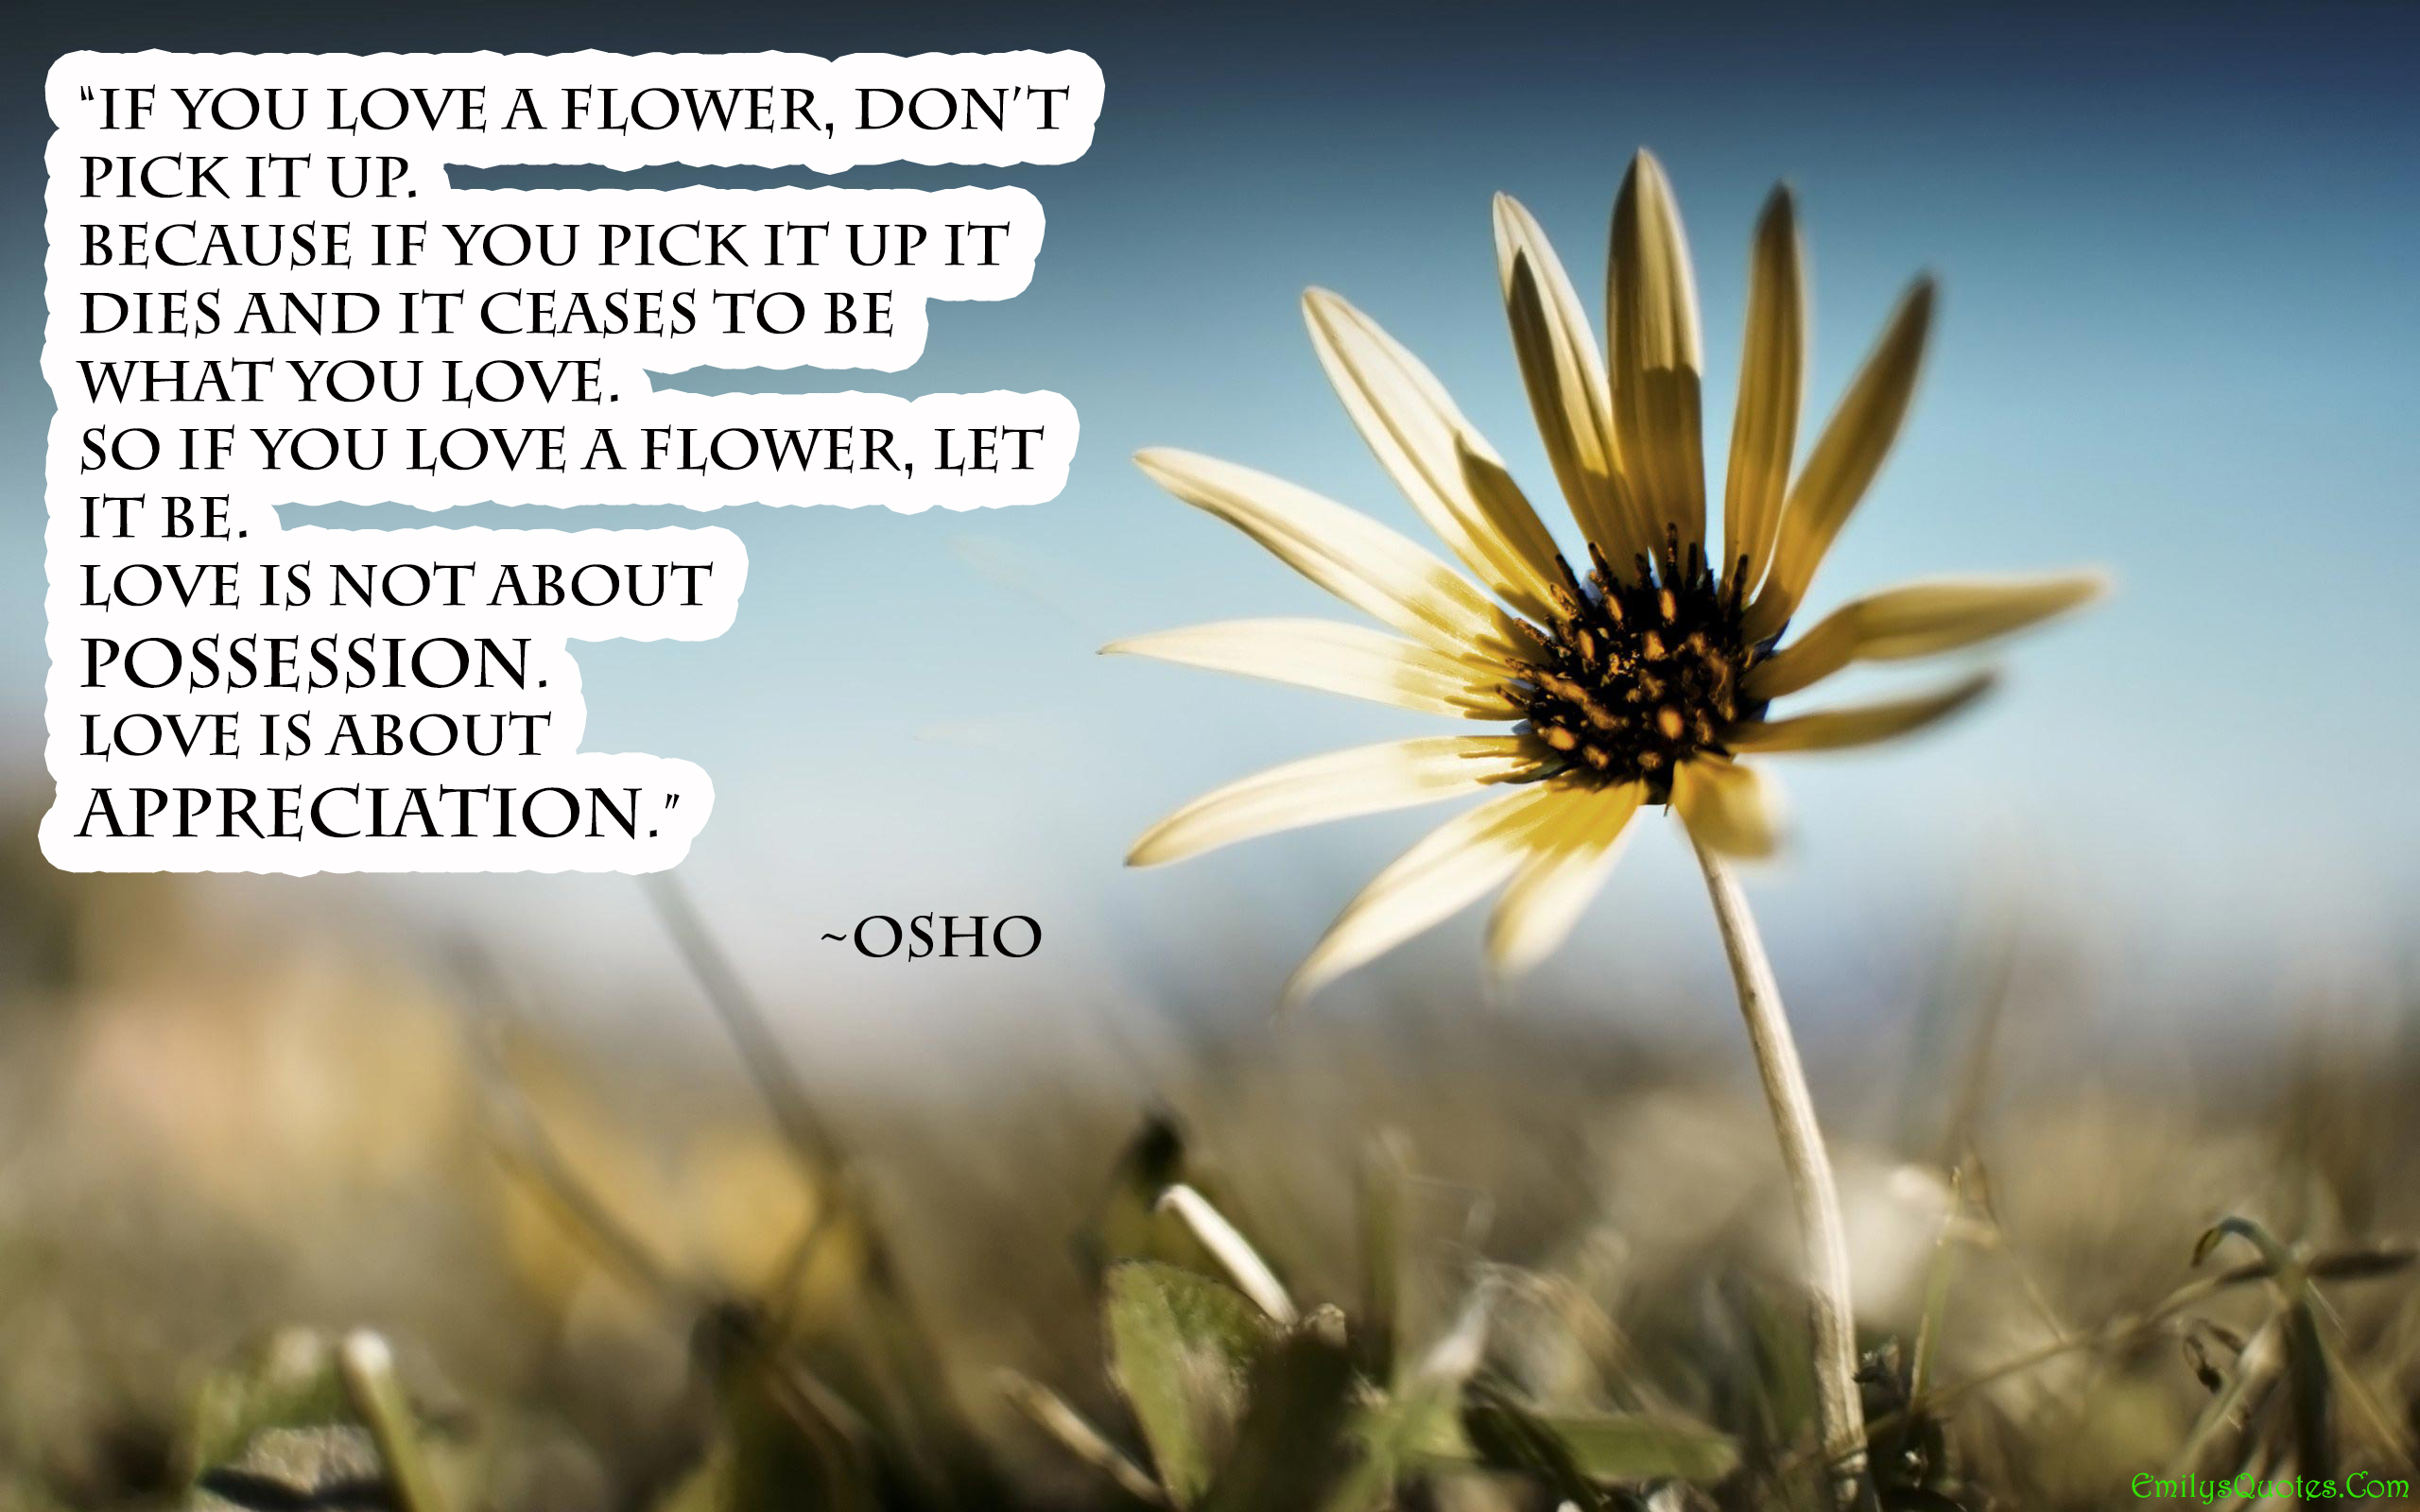 Love Flower Quotes If You Love A Flower Don't Pick It Upbecause If You Pick It Up